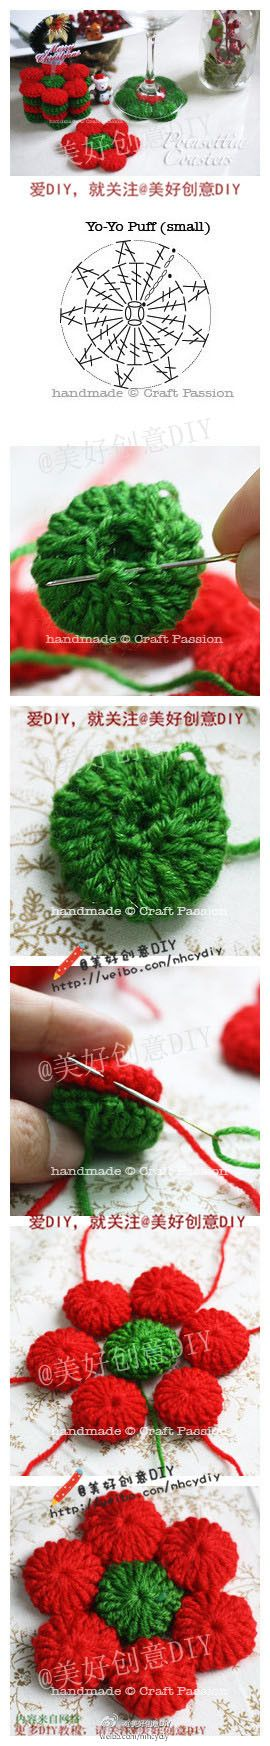 *  CROCHET AND KNIT INSPIRATION: http://pinterest.com/gigibrazil/crochet-and-knitting-lovers/